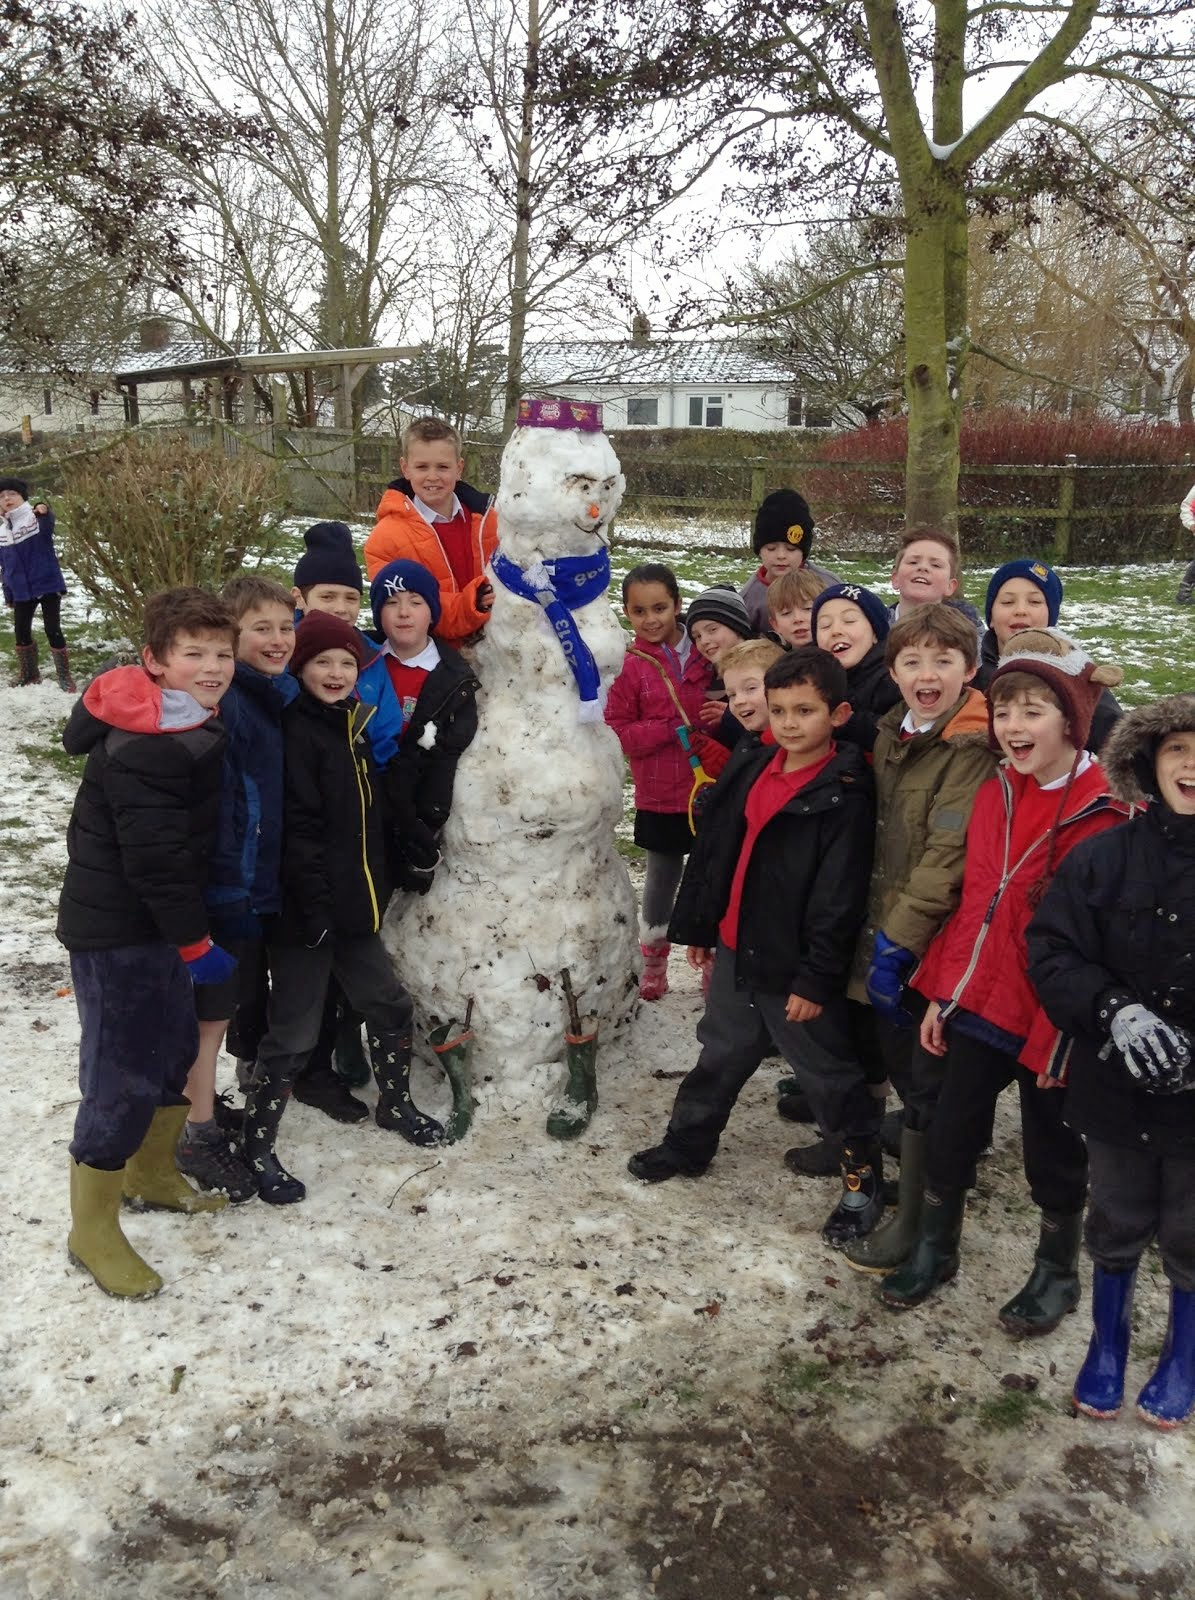 Watlington Primary School: Fun In The Snow